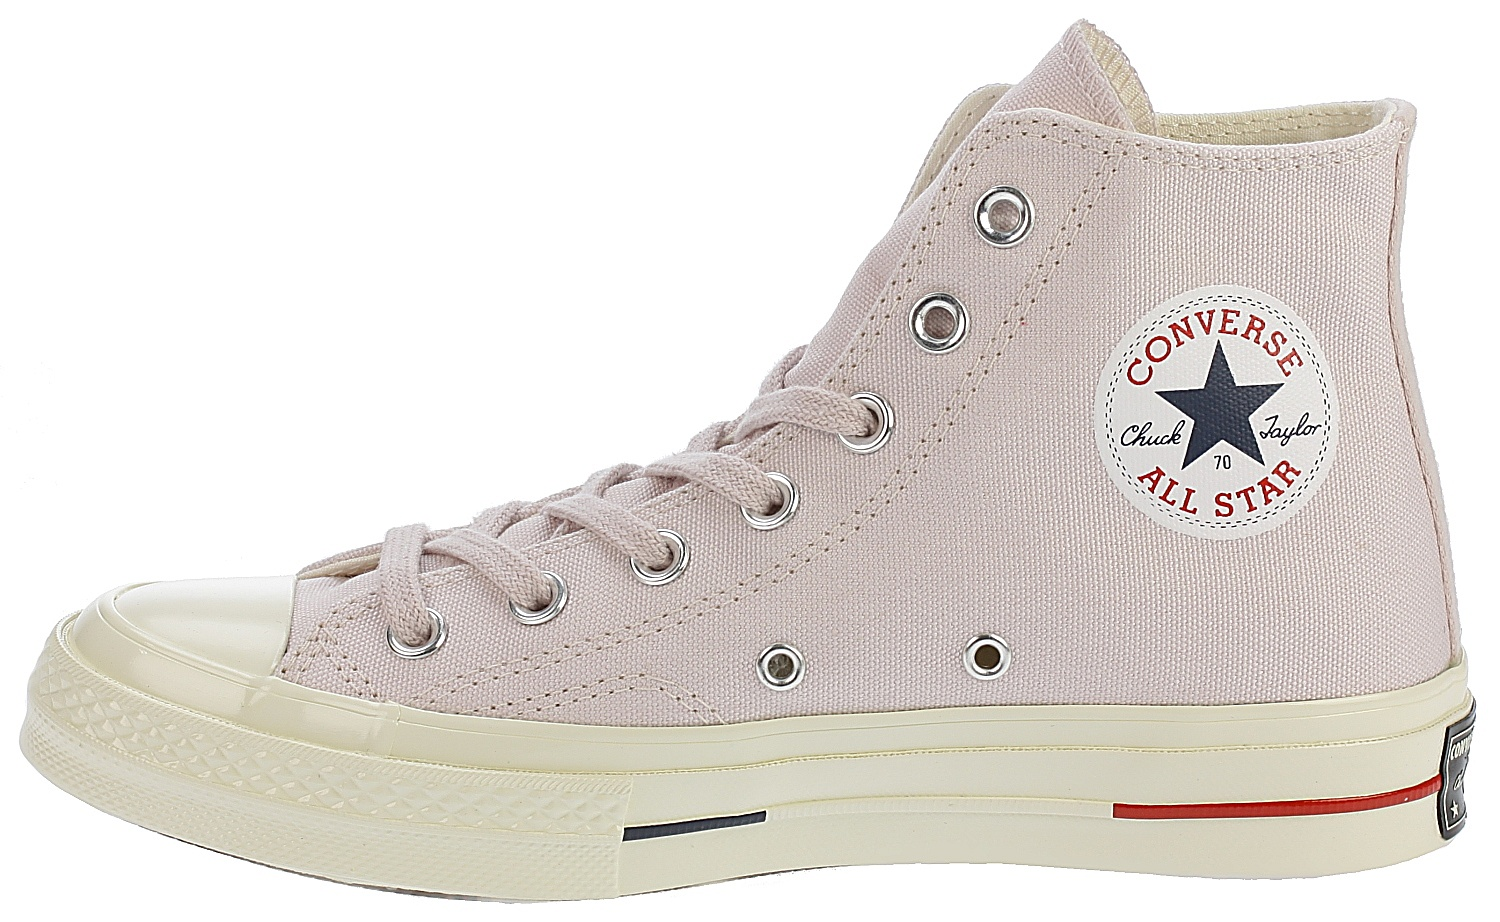 47ad3fc072b8 ... boty Converse Chuck Taylor All Star 70 s Hi - 160492 Barely Rose Gym Red  ...